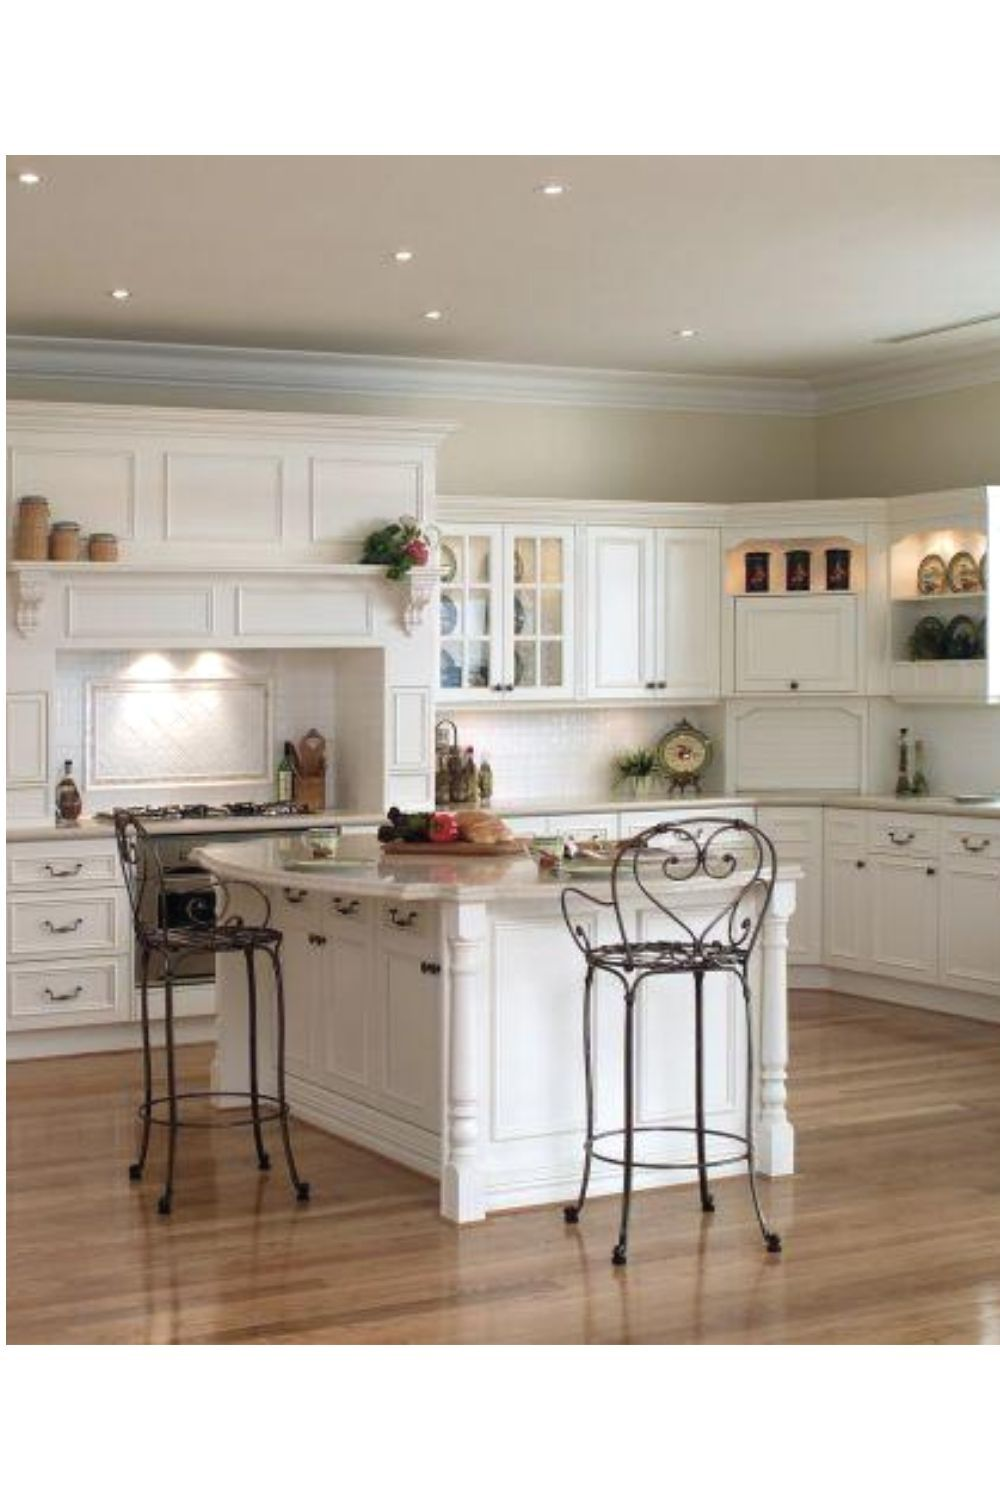 Design Your Own Kitchen: 37 Table The Best Creative Kitchen To Add To Your Own Home